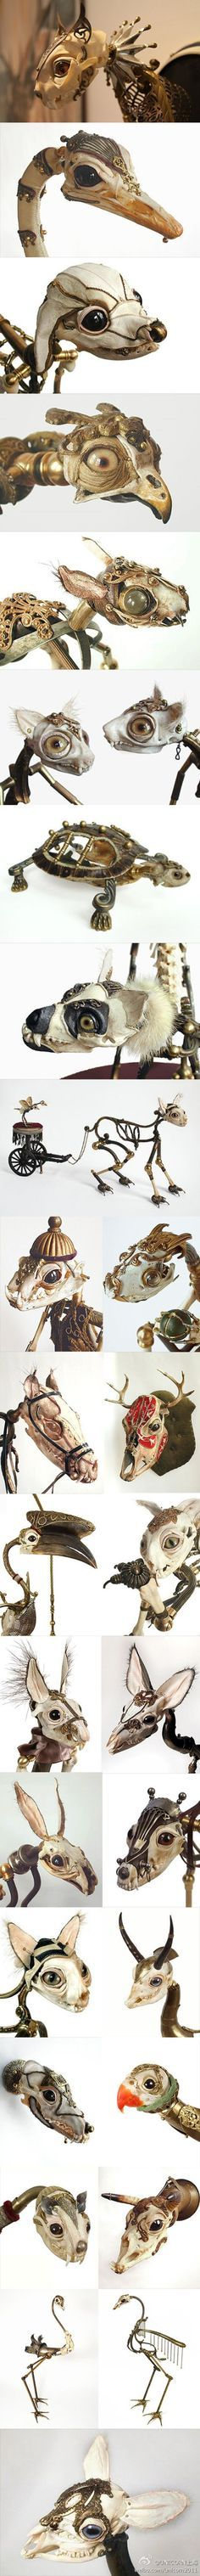 Jesscia Joslin: This is for the taxidermy fans. I like how she makes organic skeletons into steampunk mechanical creations. Kind of a bit android, with a turn of the century belle epoque feel)